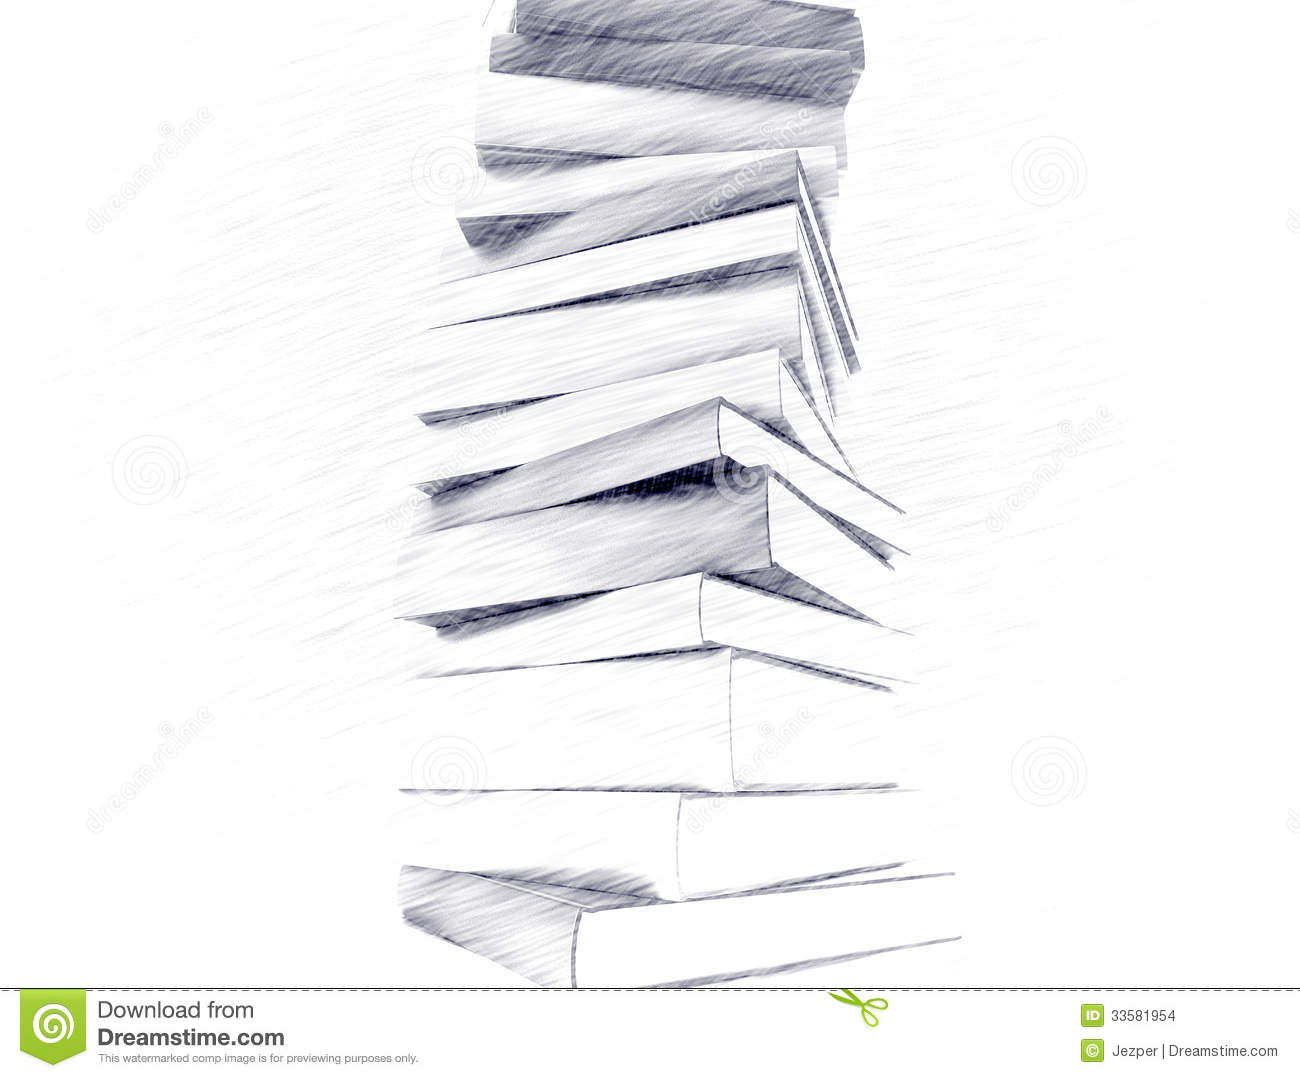 Pencil sketch of books